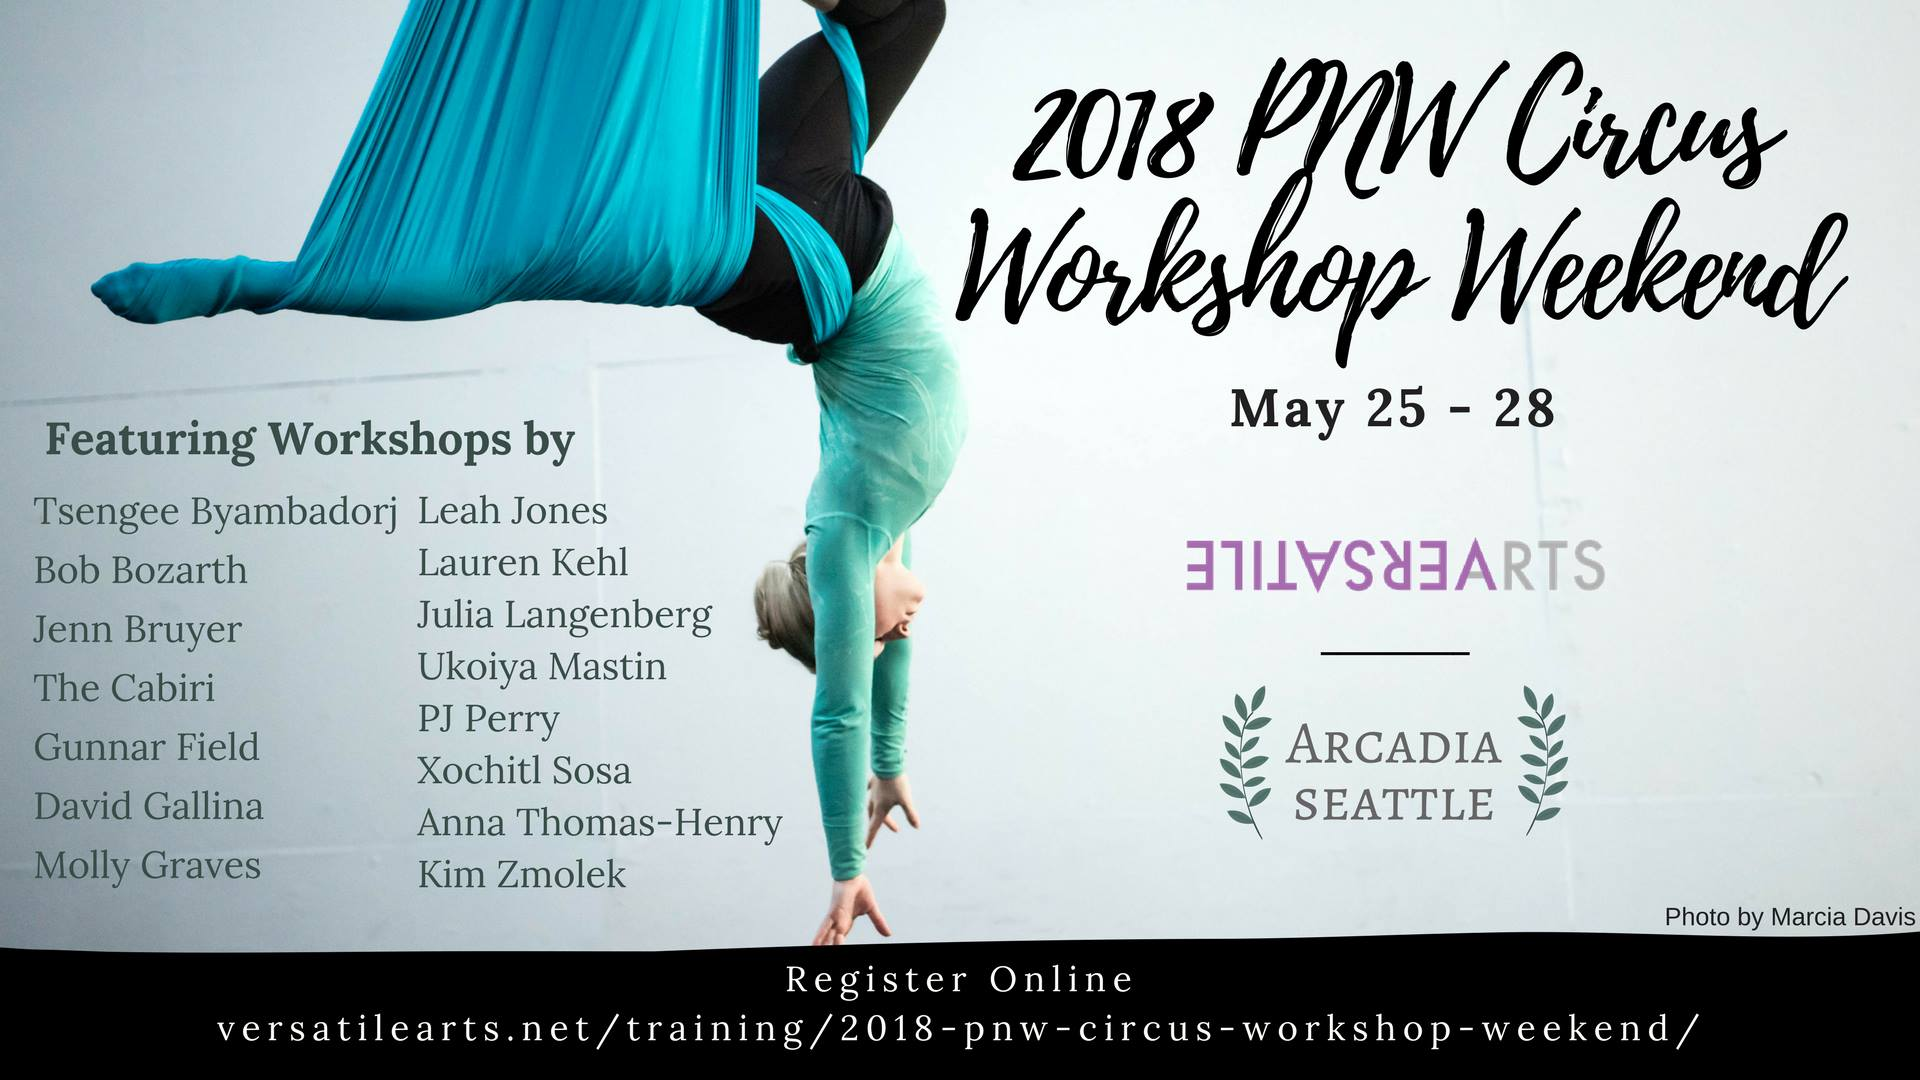 2018 PNW Circus Workshop Weekend